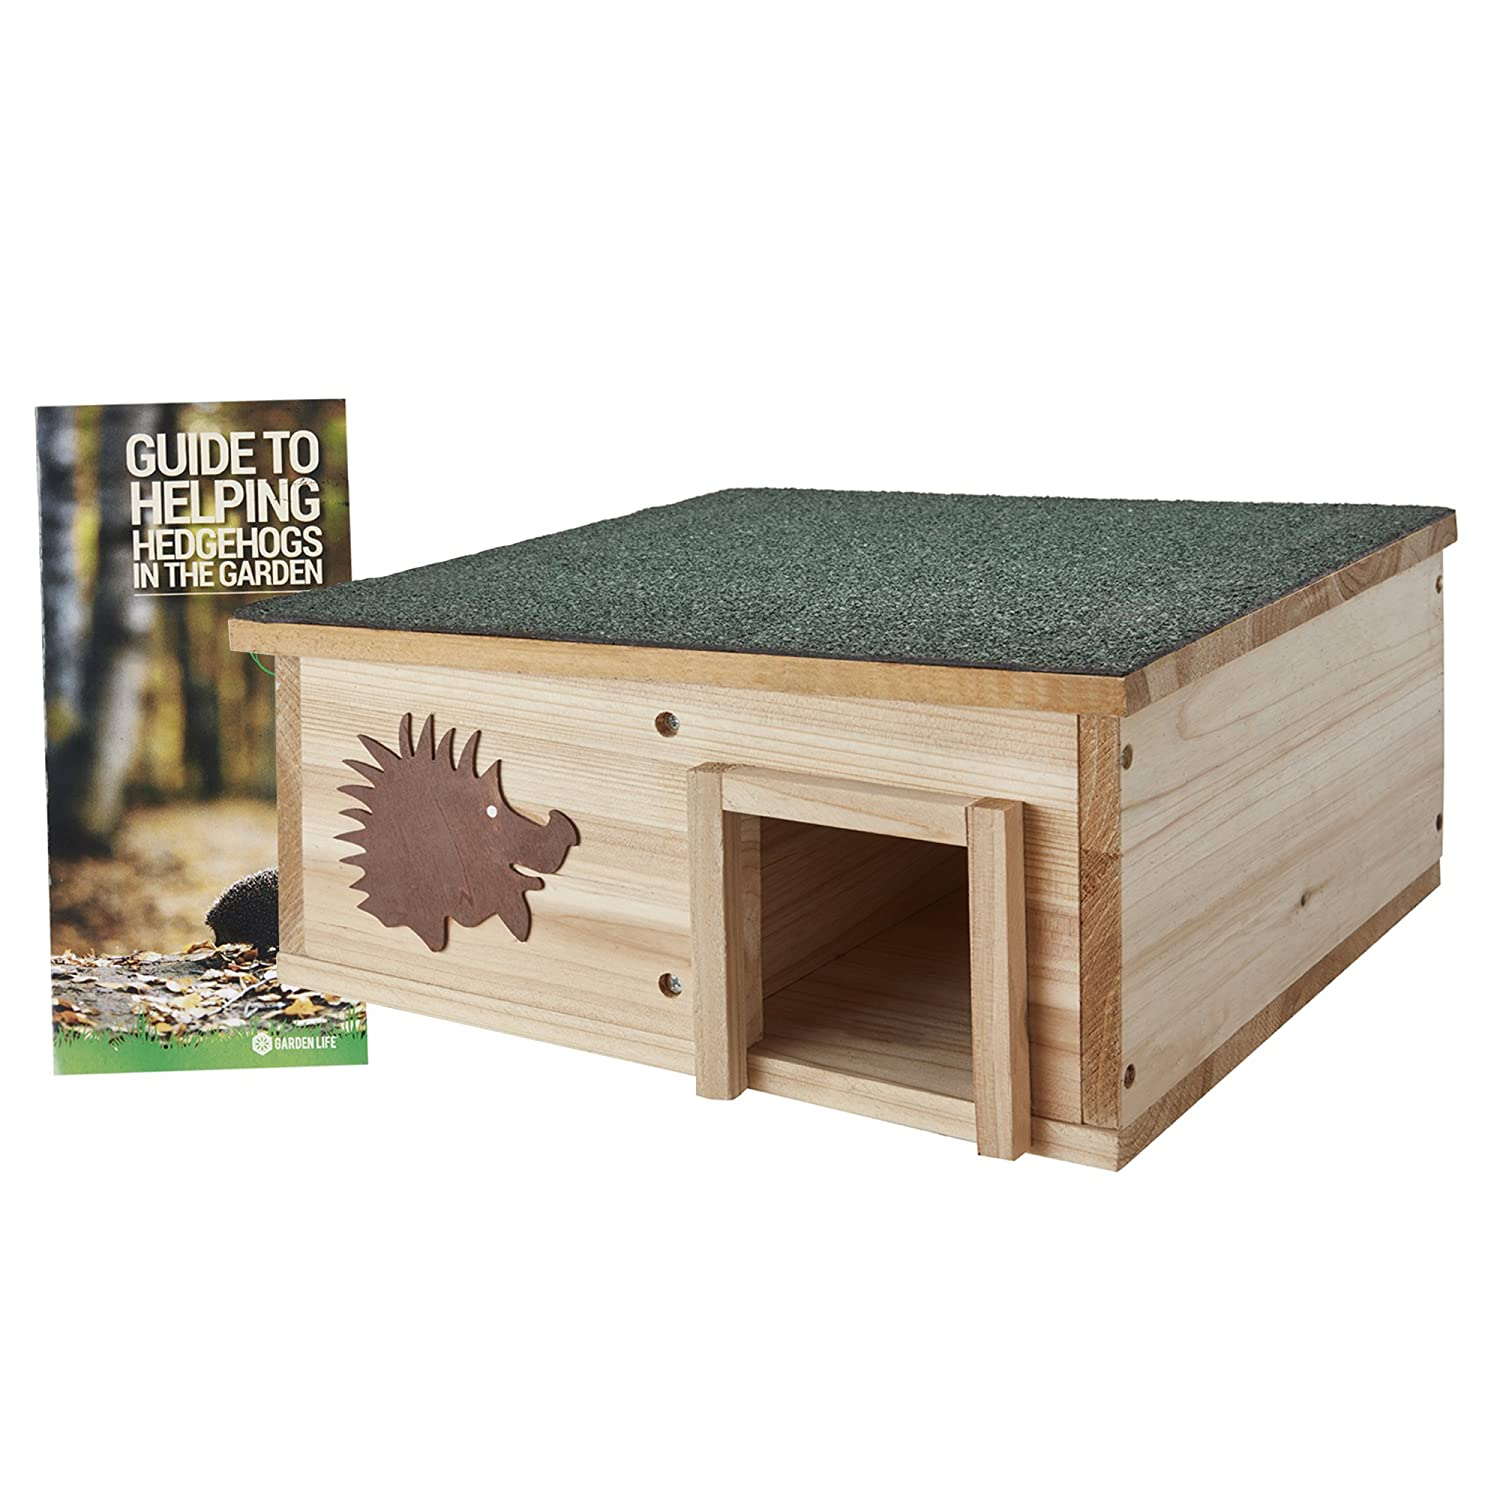 Clifford James Hedgehog House Wooden Garden Nature Hibernation Box with Waterproof Pitched Roof